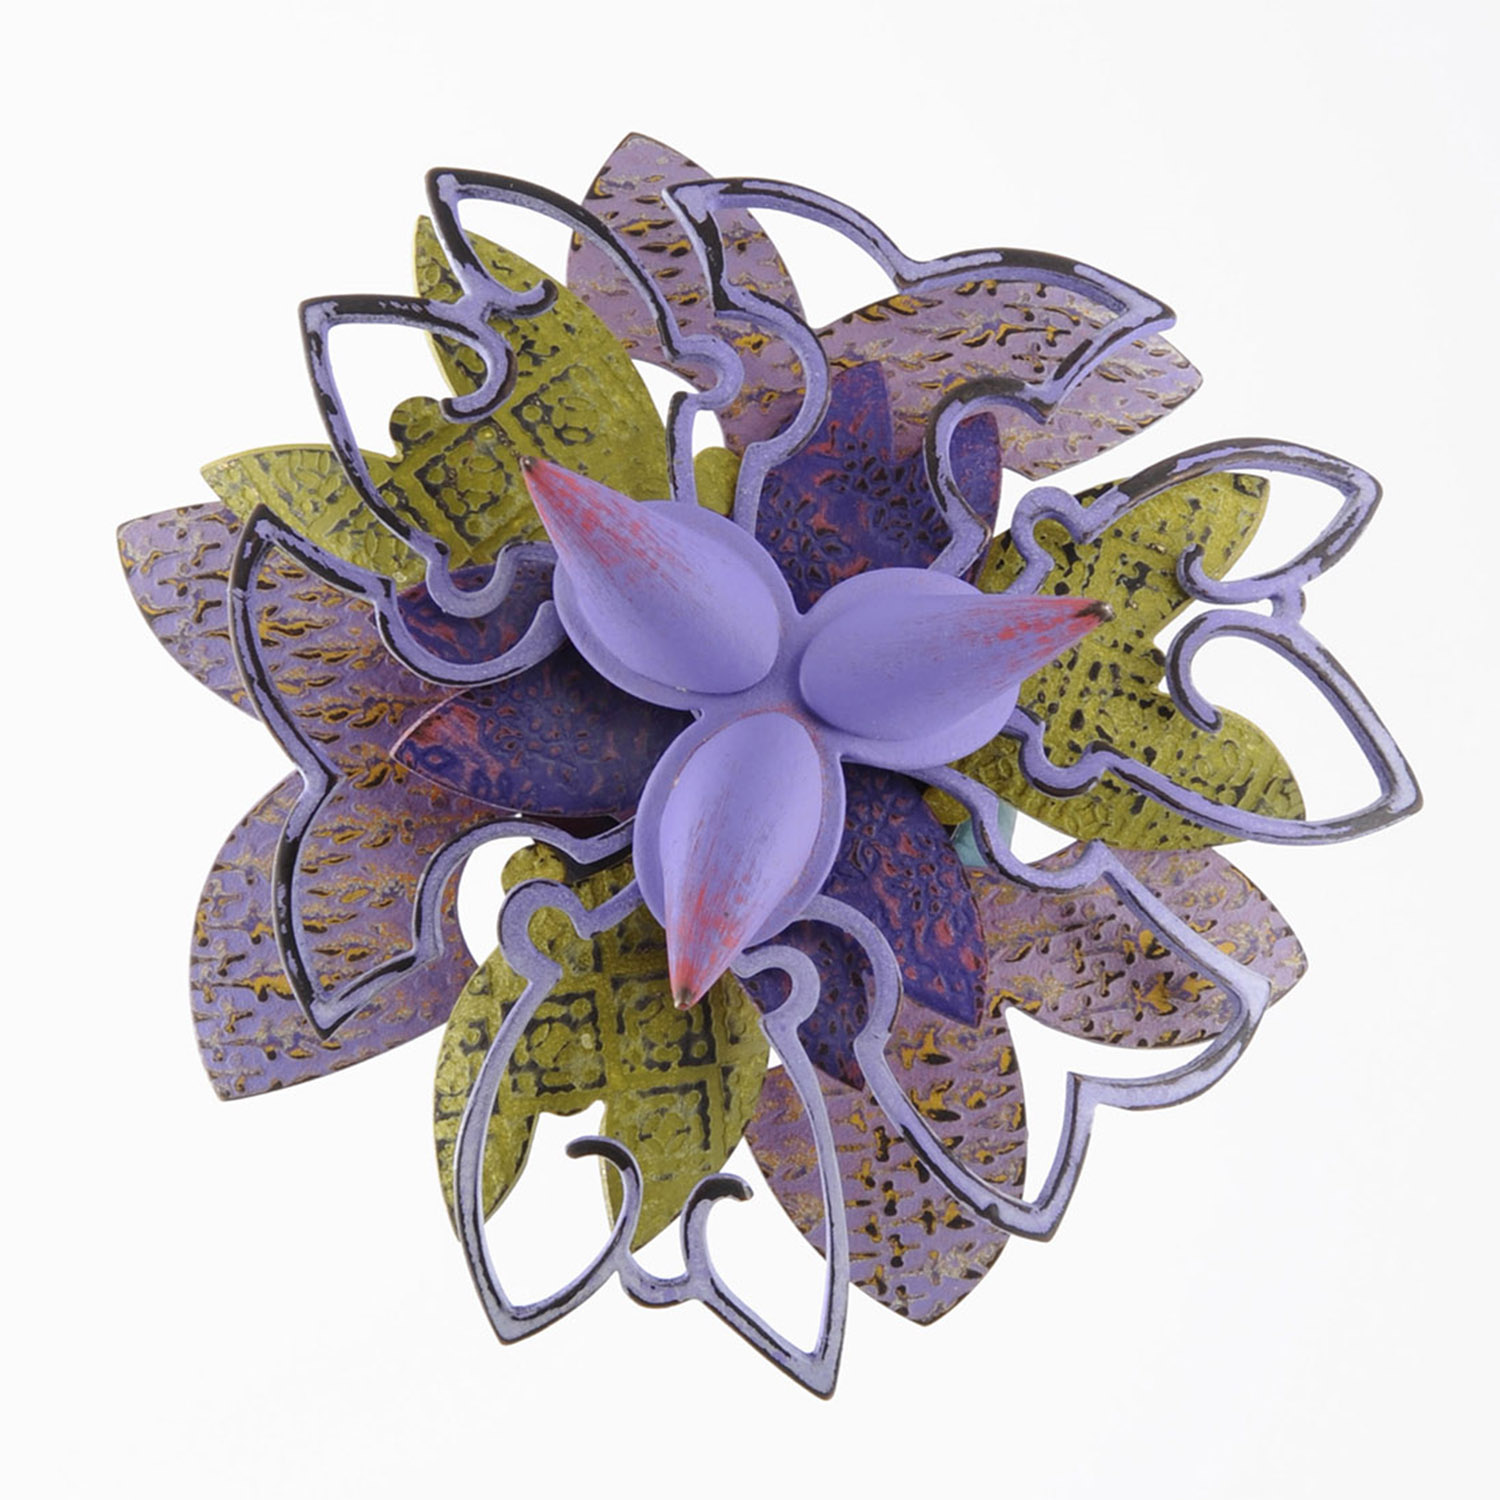 Rosette Brooch 20-15     2015     bronze, acrylic lacquer     4 x 4 x 1.25 inches